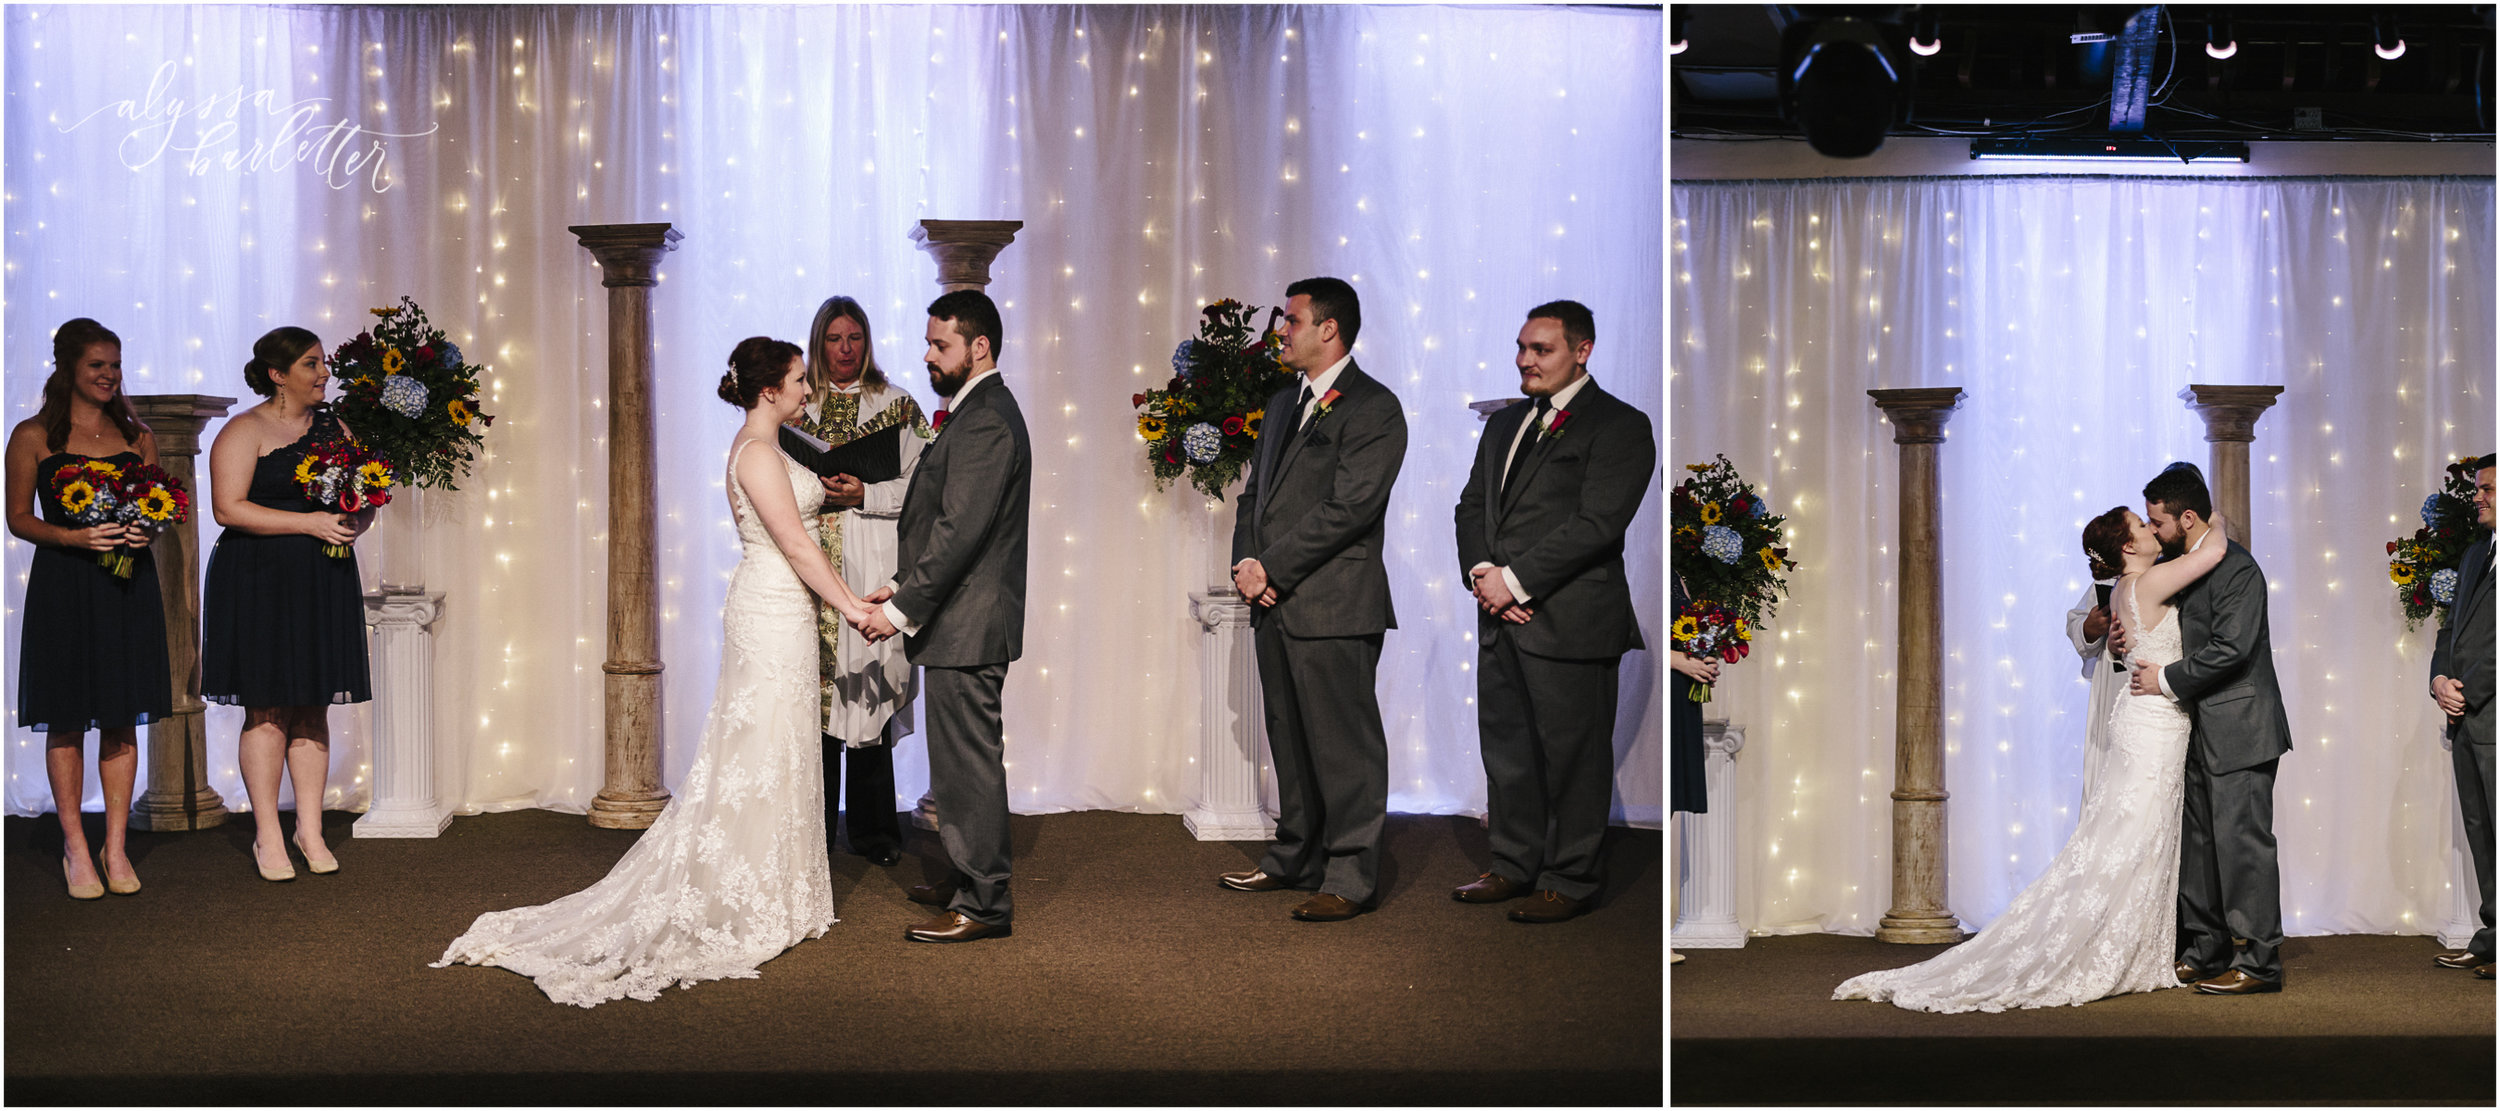 alyssa barletter photography wedding liberty missouri hipster quirky alex and shawn-1-19.jpg